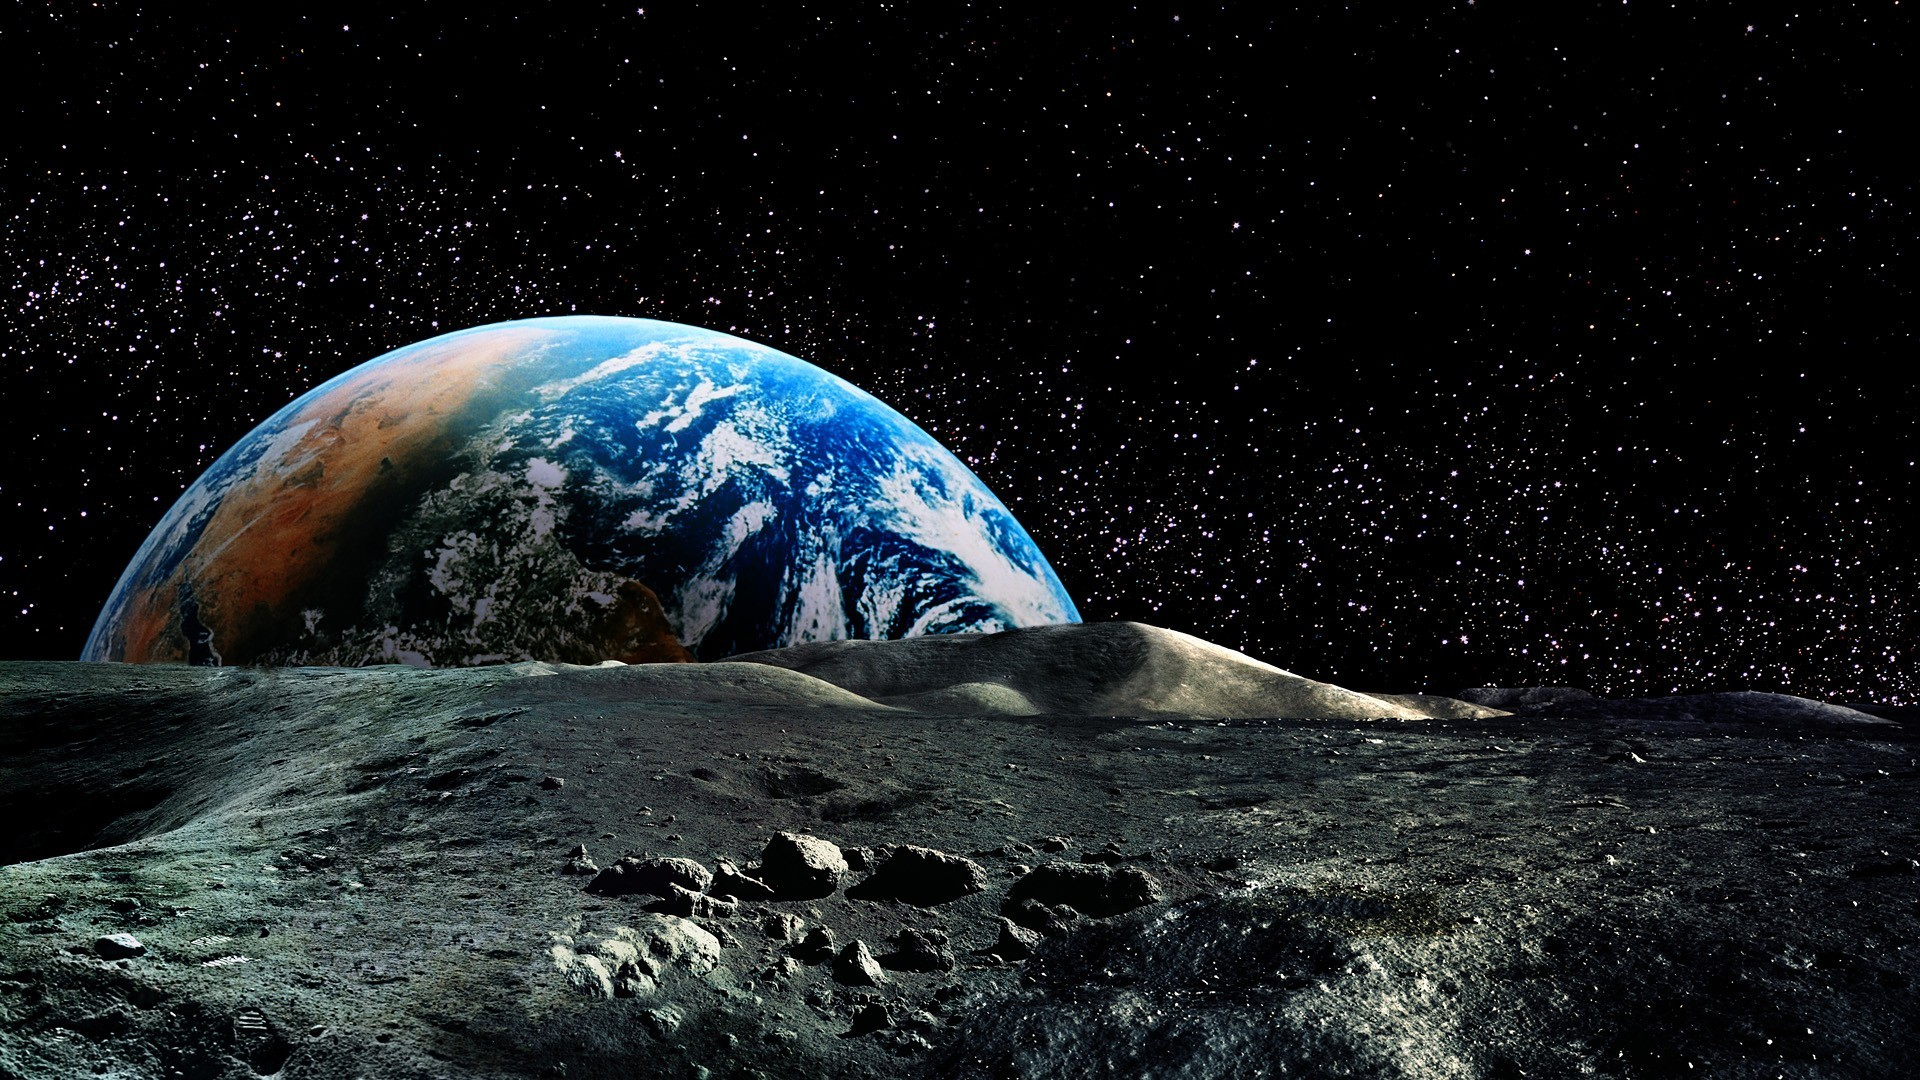 Planet Earth Wallpaper 1920x1080 (84+ Images